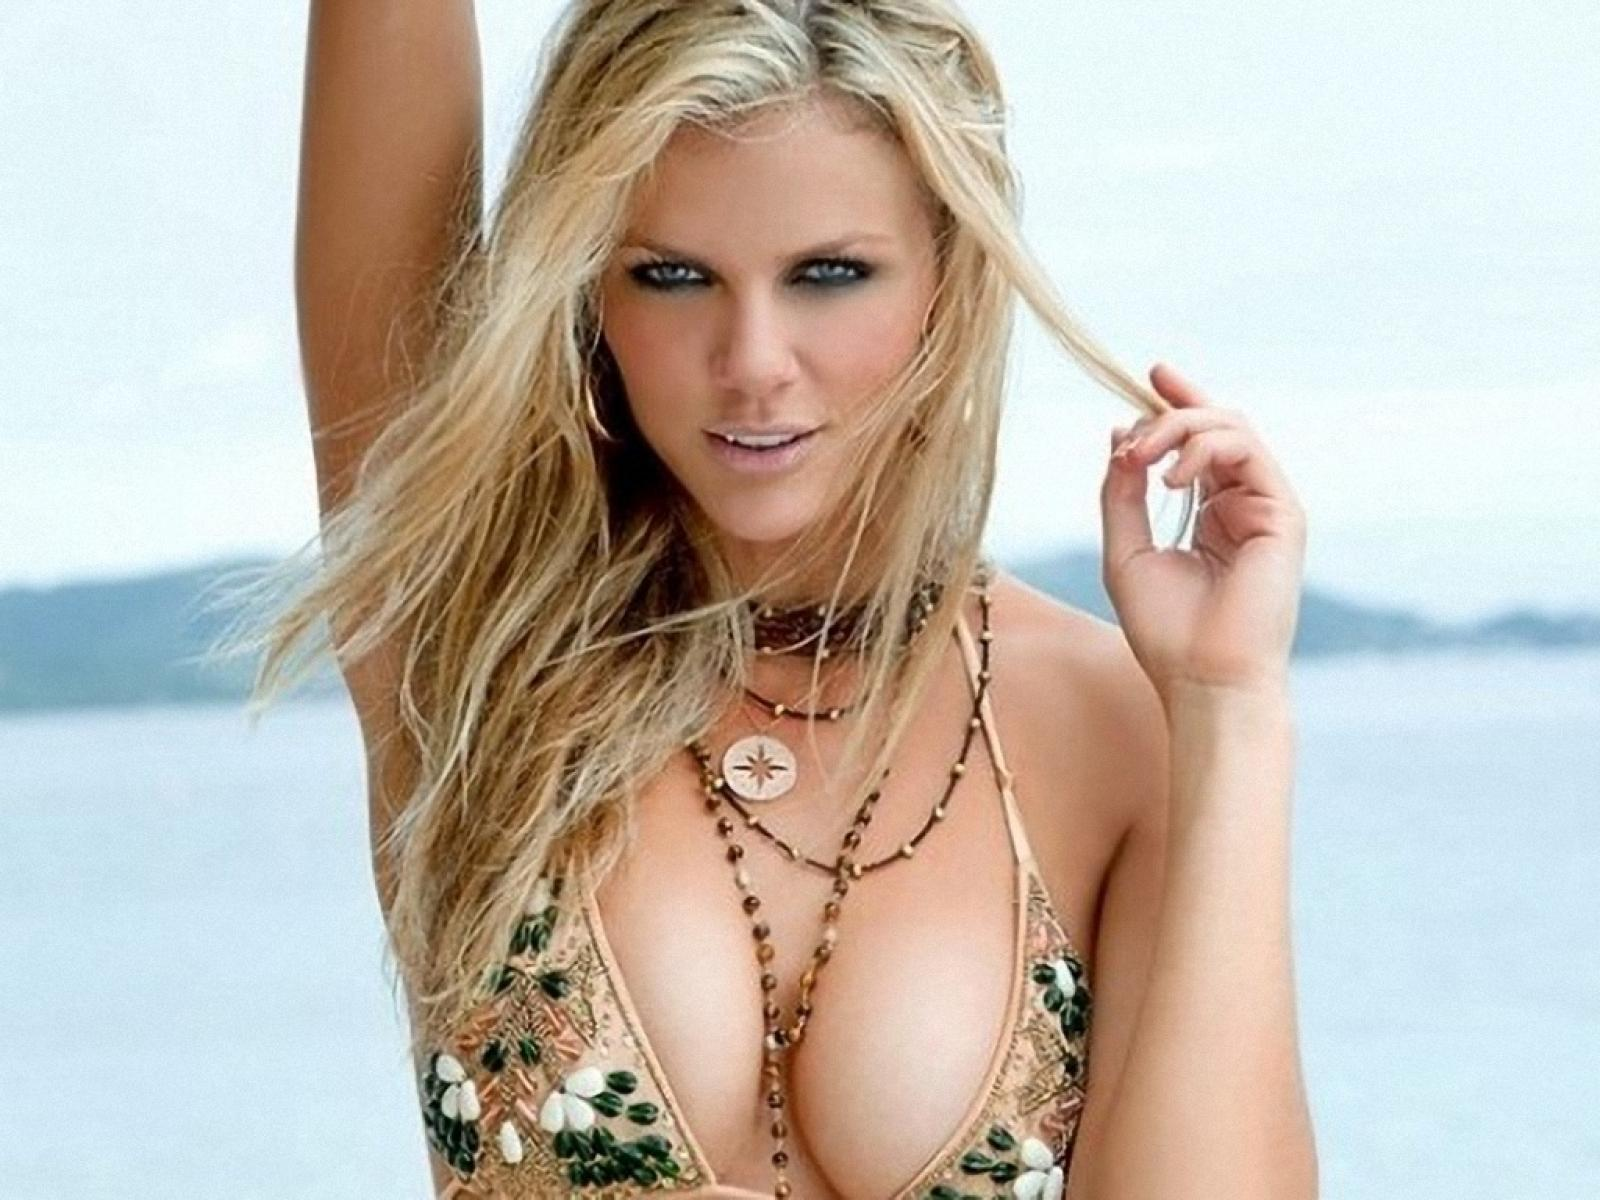 brooklyn_decker_newst_63709-1600x1200